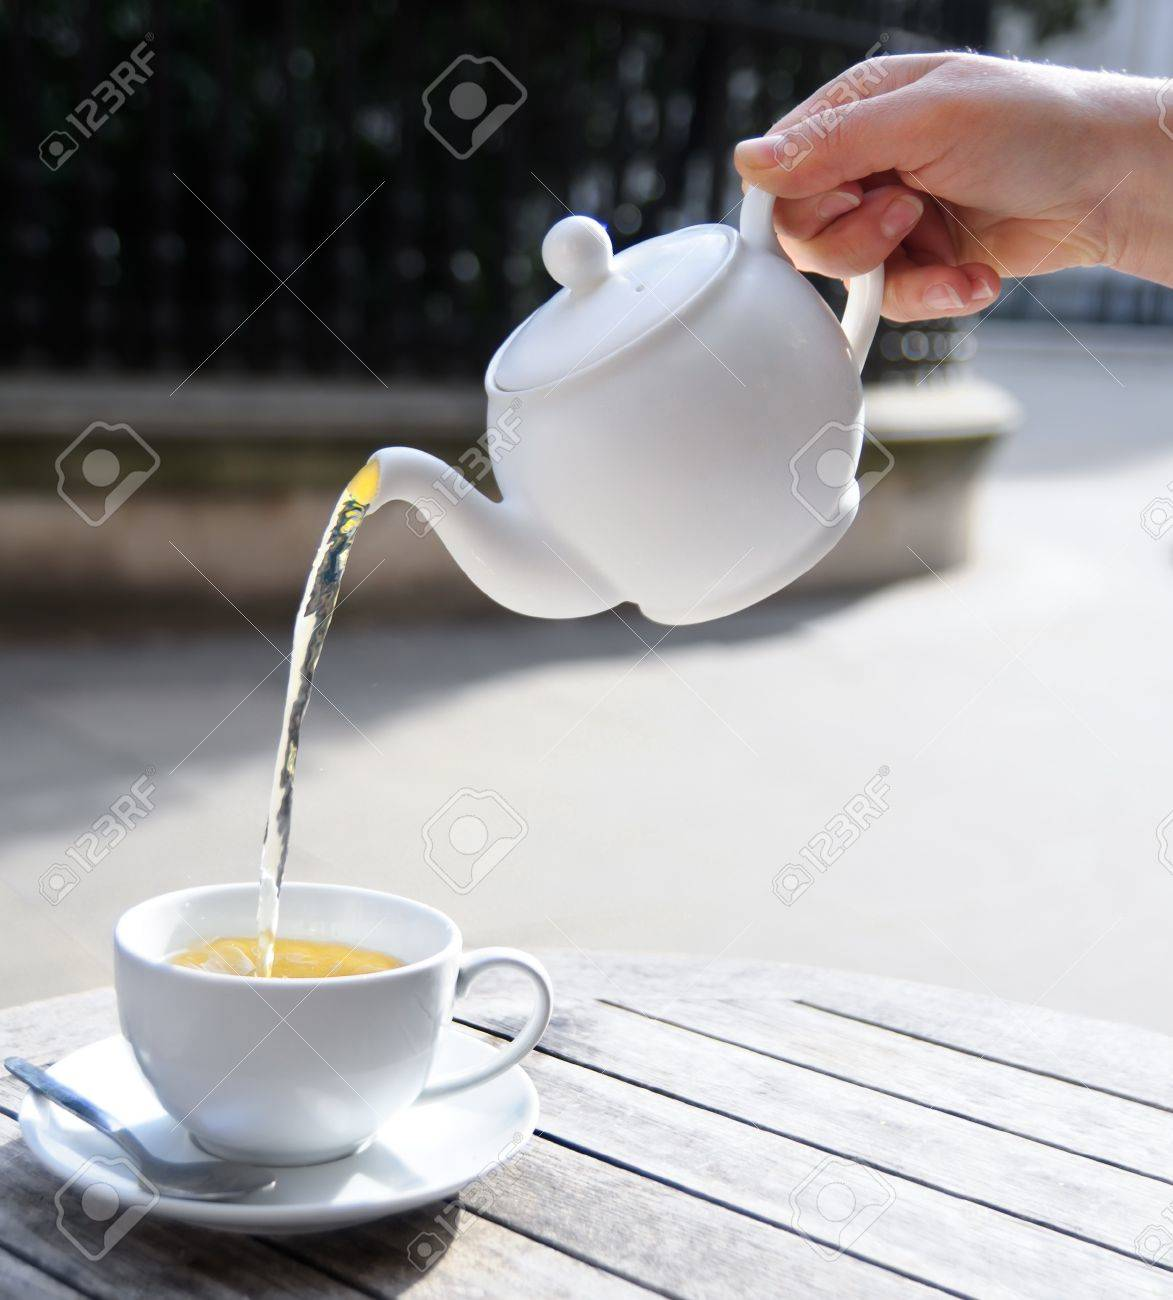 Hand Poures Green Tea From White Ceramic Teapot Into A Matching Tea Cup Stock Photo Picture And Royalty Free Image Image 14387190 Hd wallpaper tea cup kettle hands